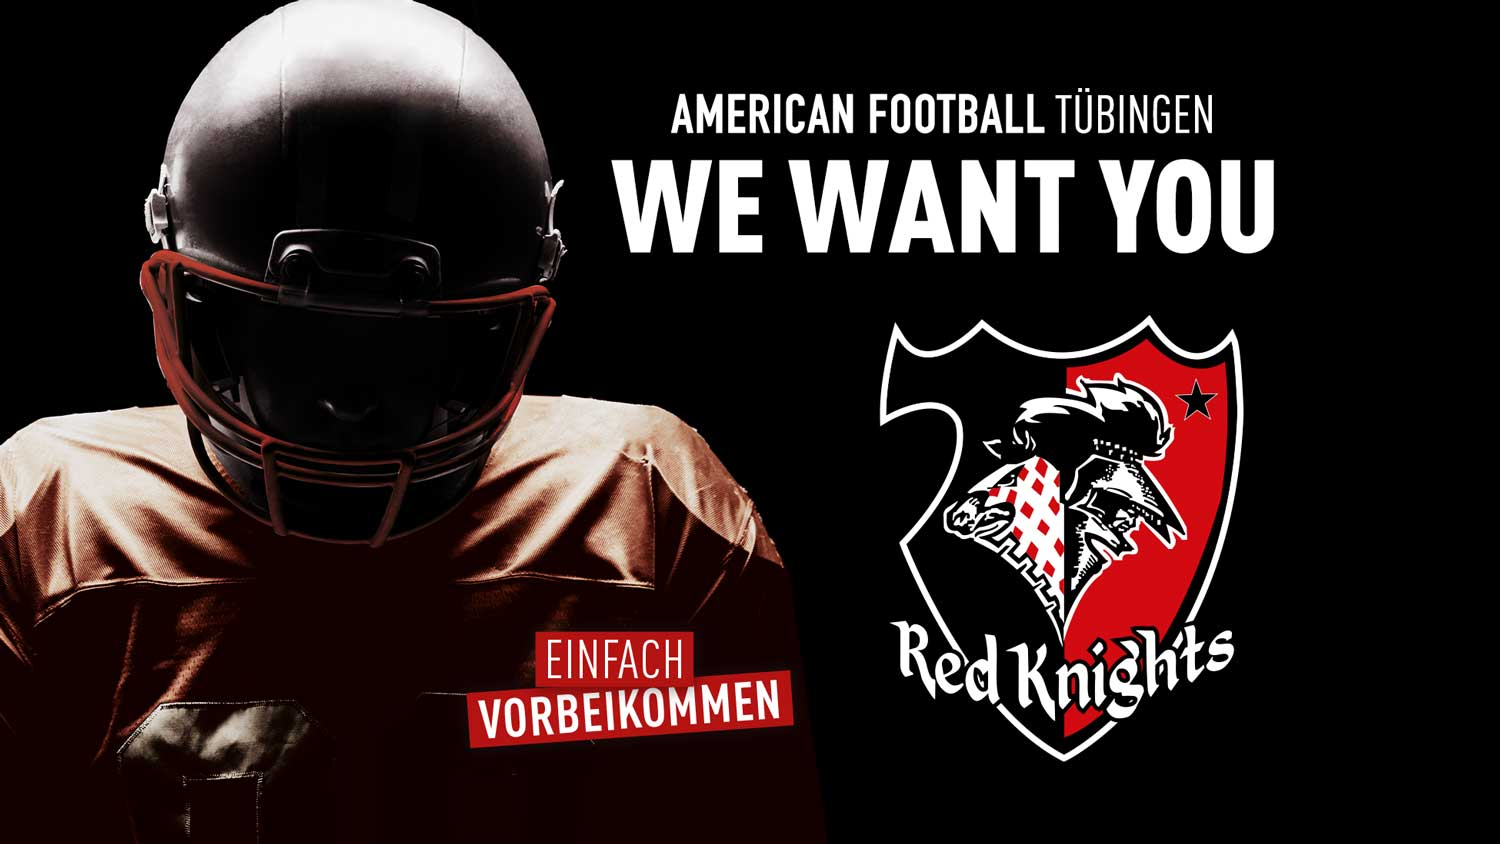 Red Knights Tübingen - We Want You